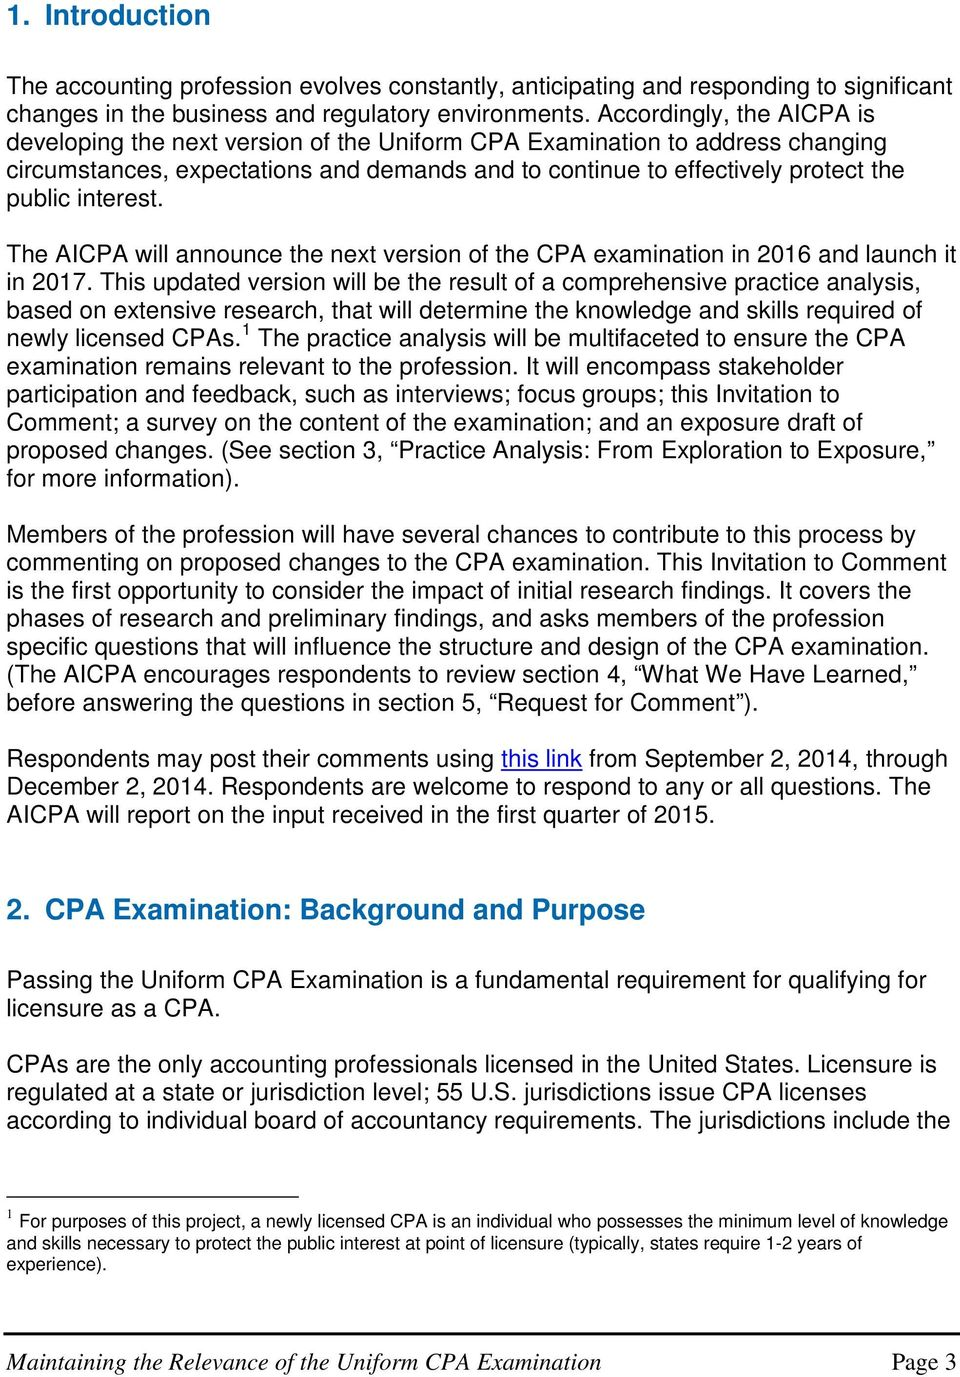 interest. The AICPA will announce the next version of the CPA examination in 2016 and launch it in 2017.